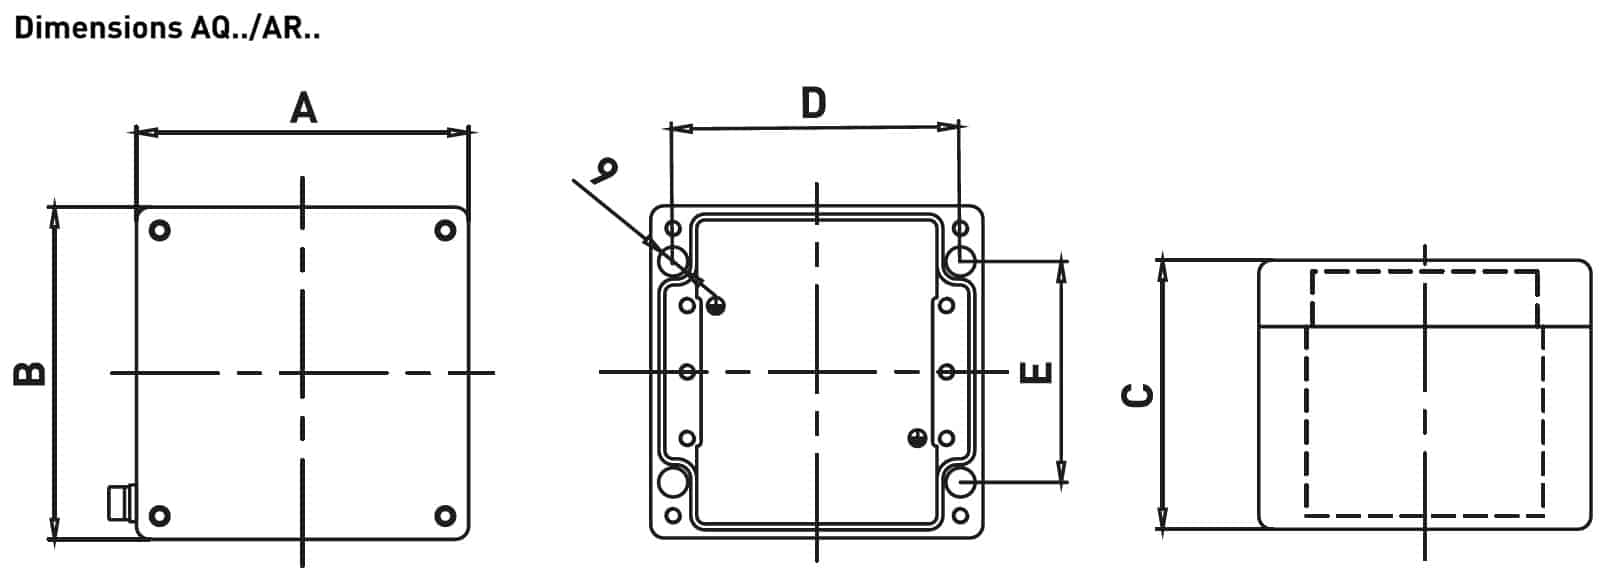 Increased Safety Hazardous Area Technor AQ-AR ALU Low Thickness Junction Boxes - Dimensions